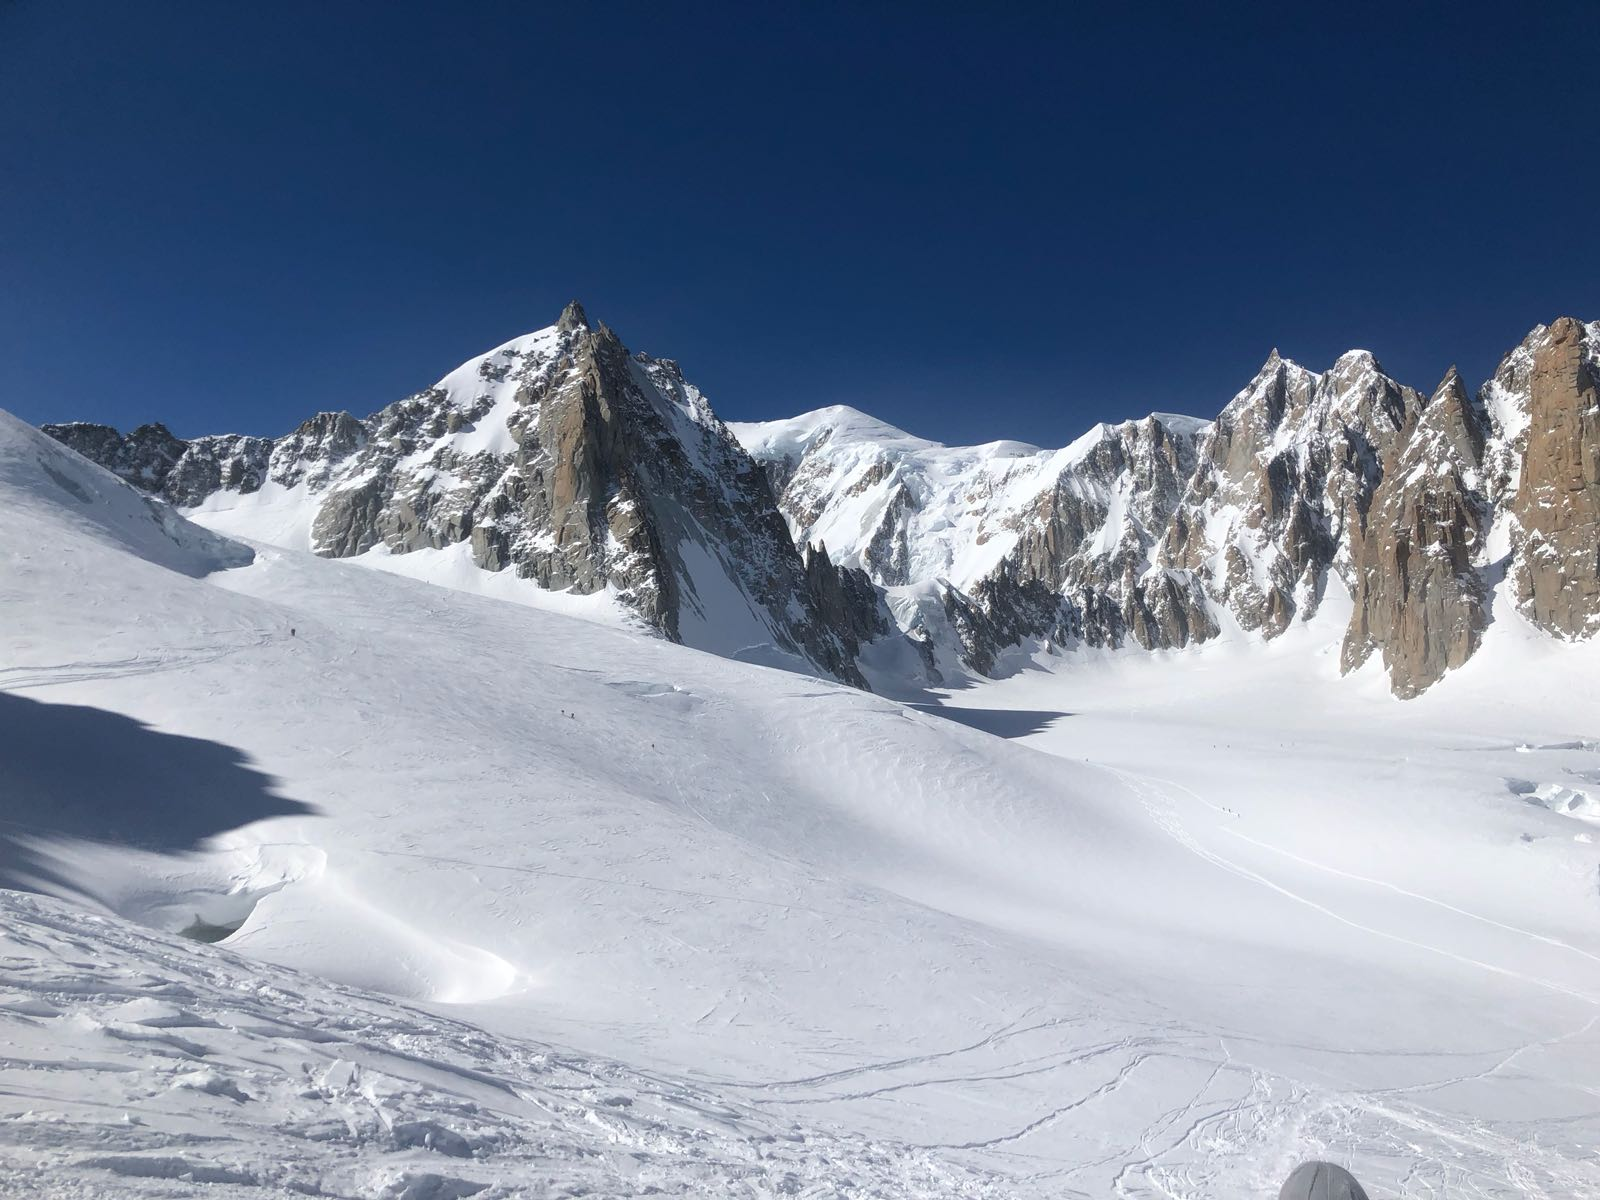 vallee blanche guide alpine proup (43)